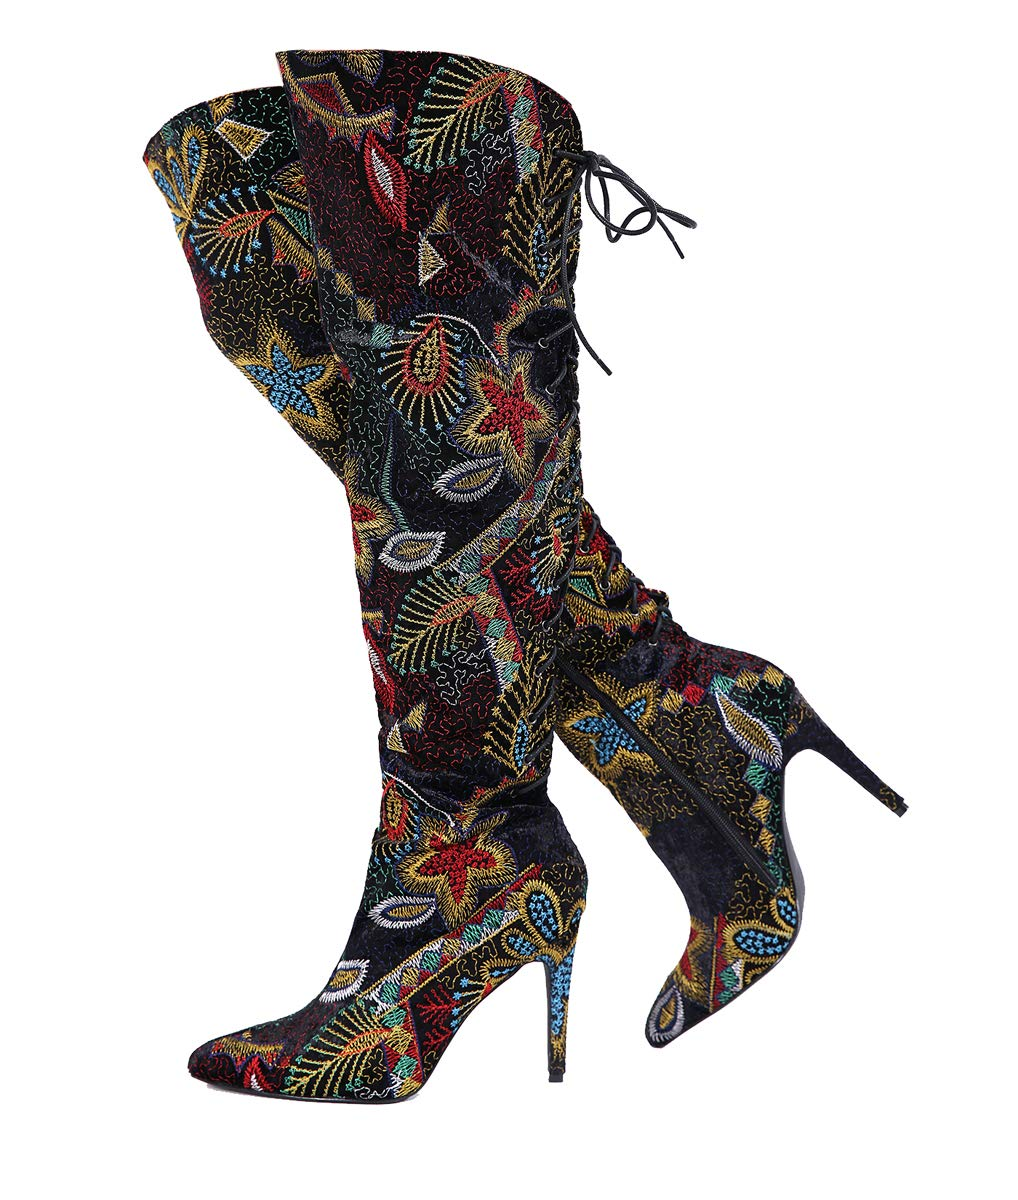 Stupmary Winter Women Boots Ethnic Over The Knee High Embroidery Print Stilleo Heels Pointed Toe Thigh Bootie by Stupmary